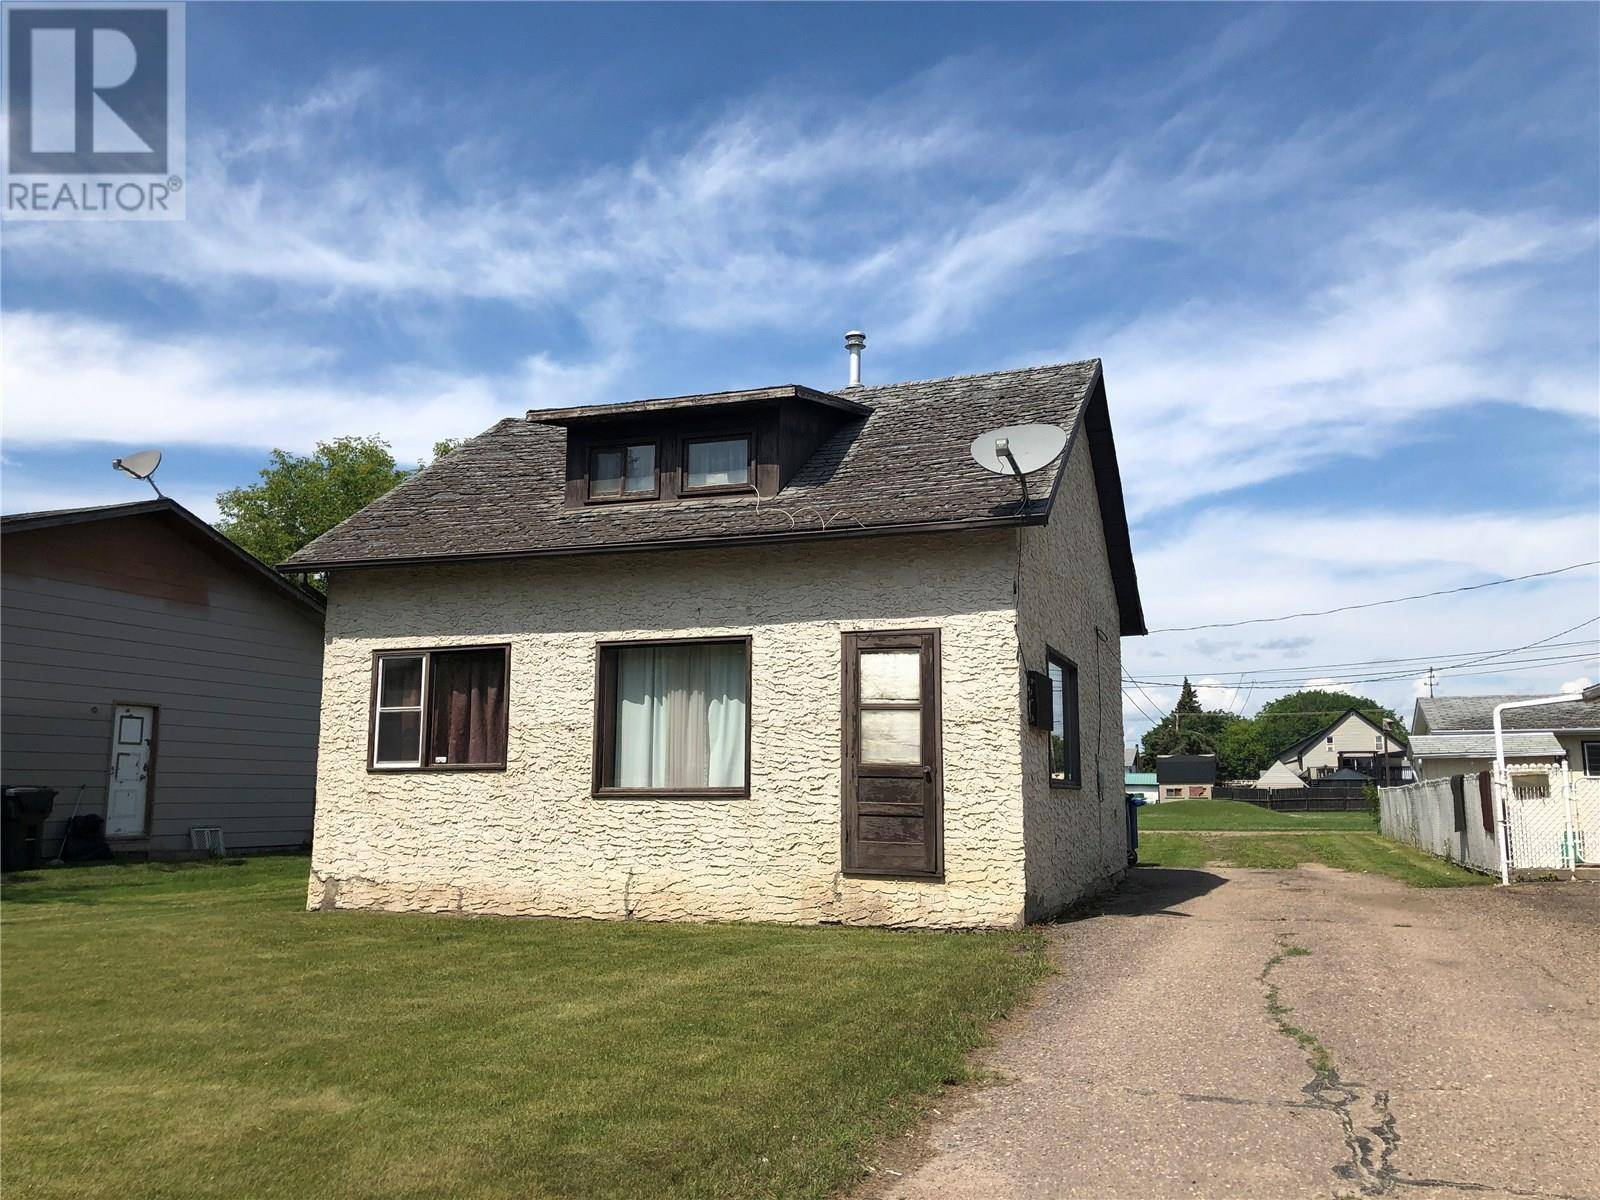 House for sale at 403 3rd Ave W Meadow Lake Saskatchewan - MLS: SK779254